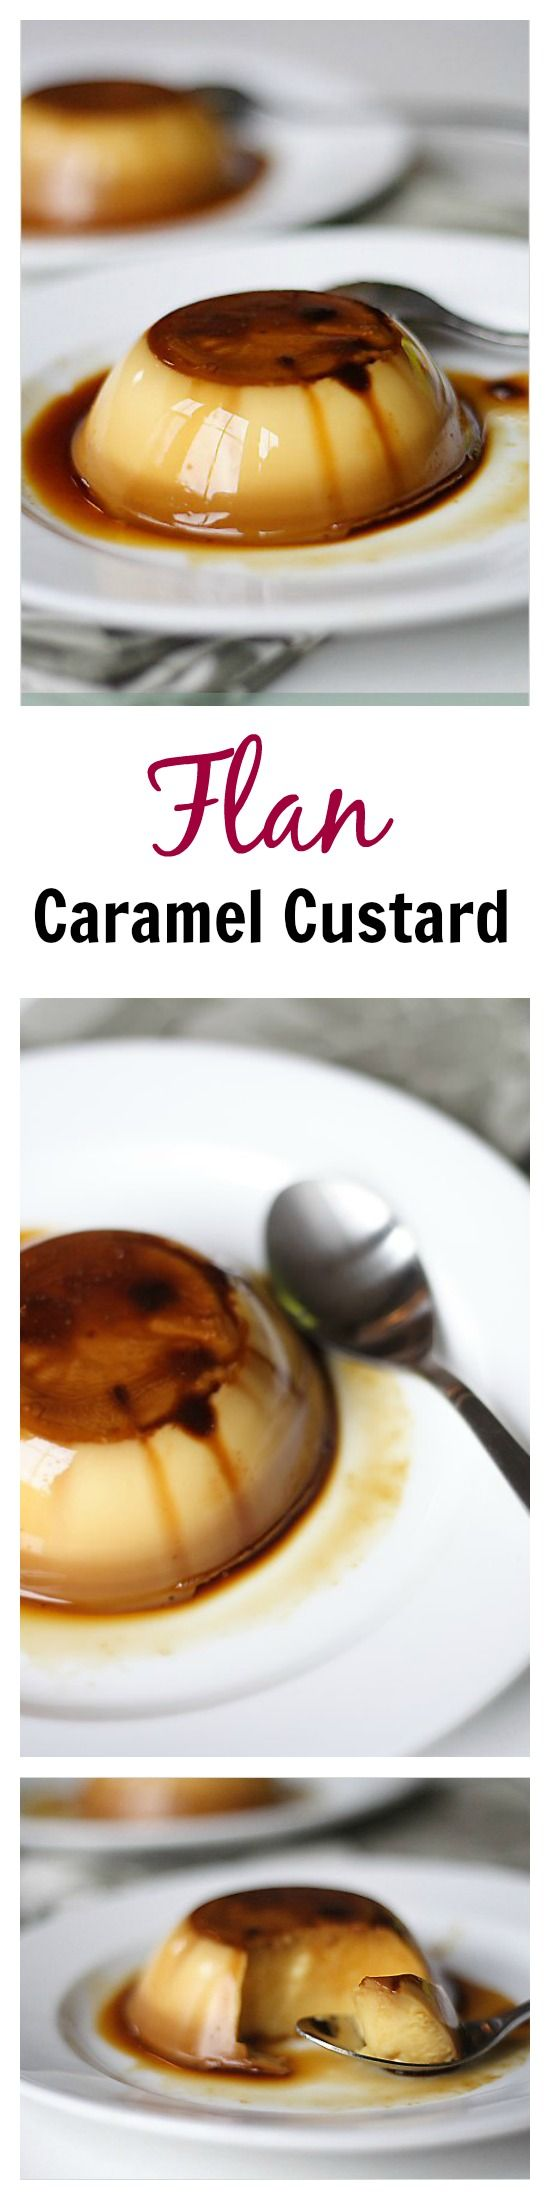 Flan or caramel custard recipe. Easy, sweet, silky smooth egg custard with caramel sauce. SO YUMMY | rasamalaysia.com: